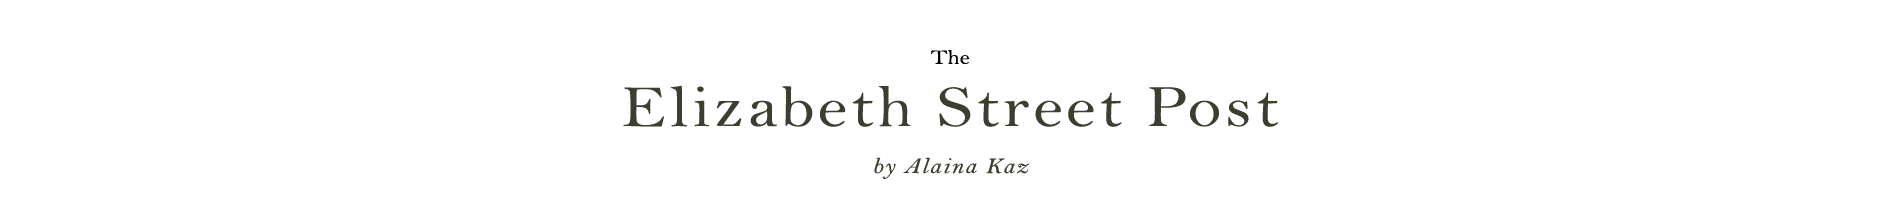 The Elizabeth Street Post: A Lifestyle Blog by Alaina Kaz -